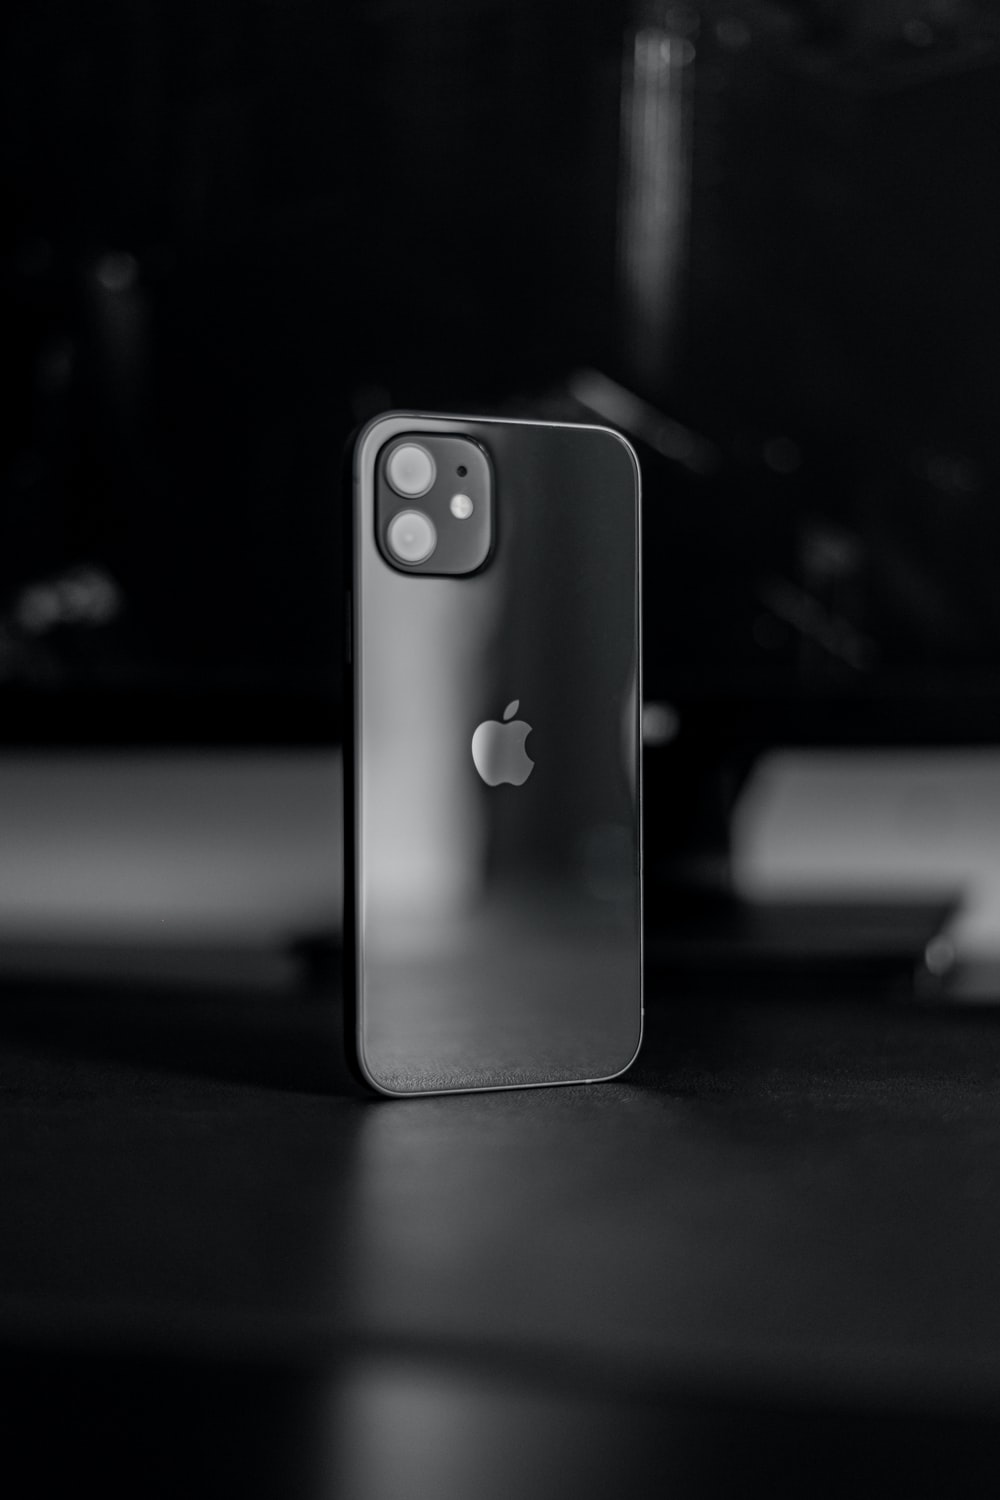 white and black dice on iphone